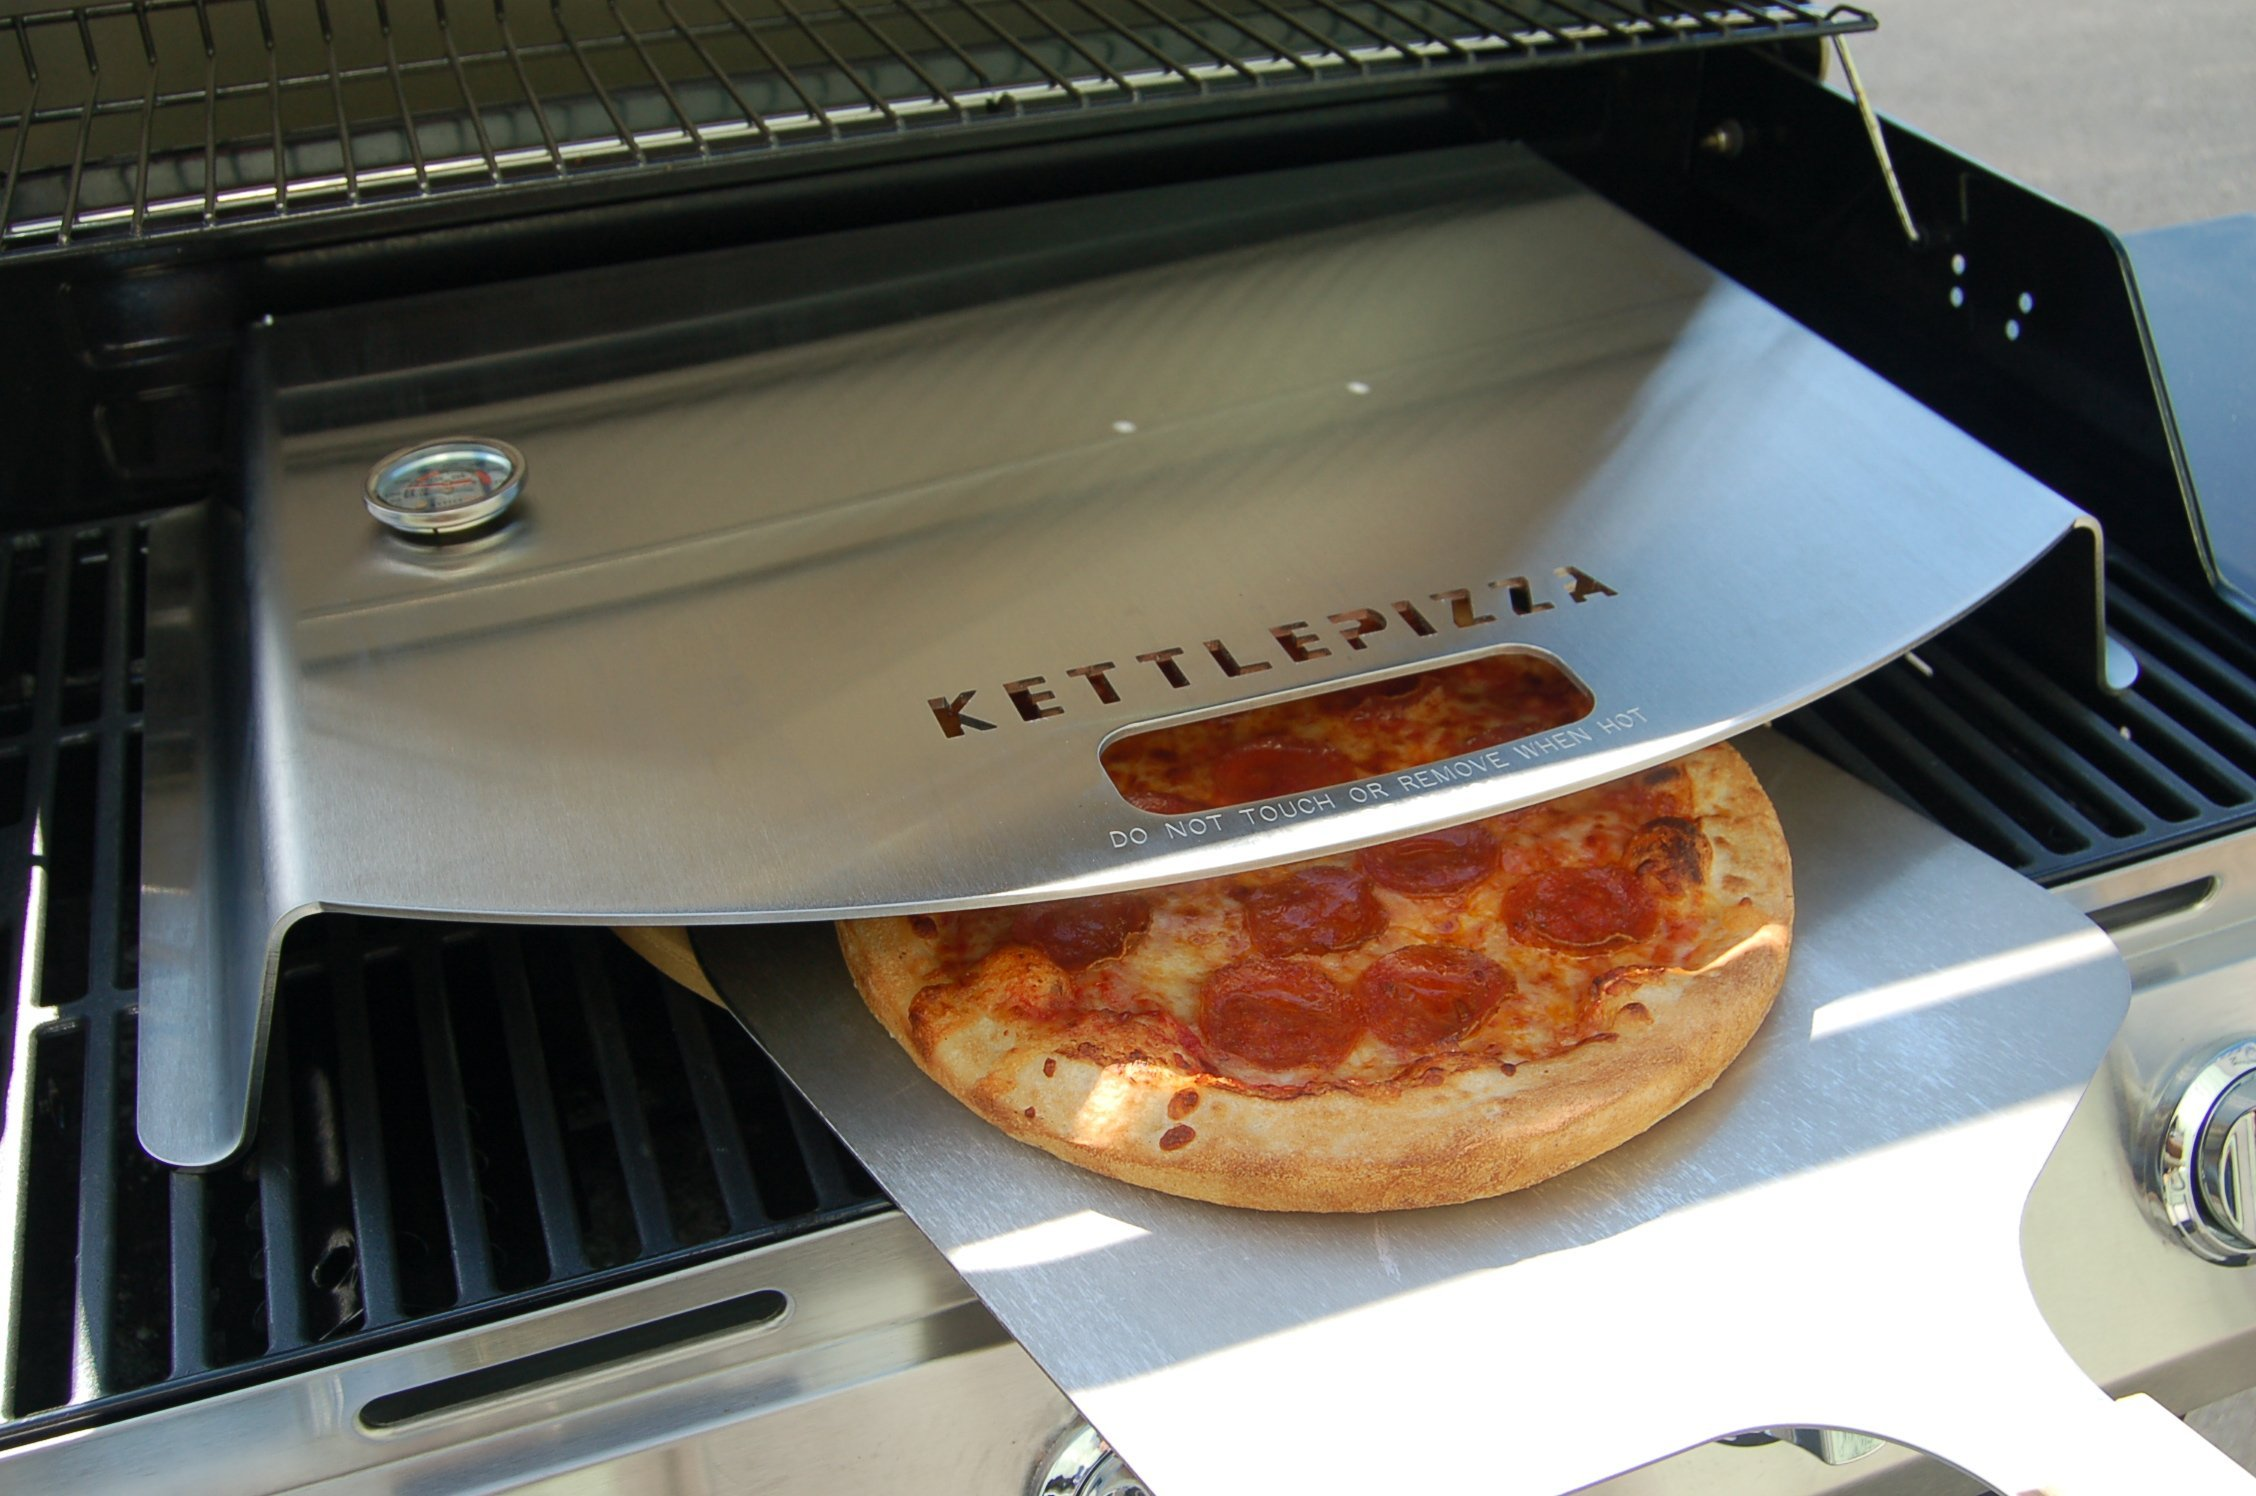 KettlePizza Gas Pro Deluxe Pizza Oven Kit - KPD-GP by Kettle Pizza (Image #4)